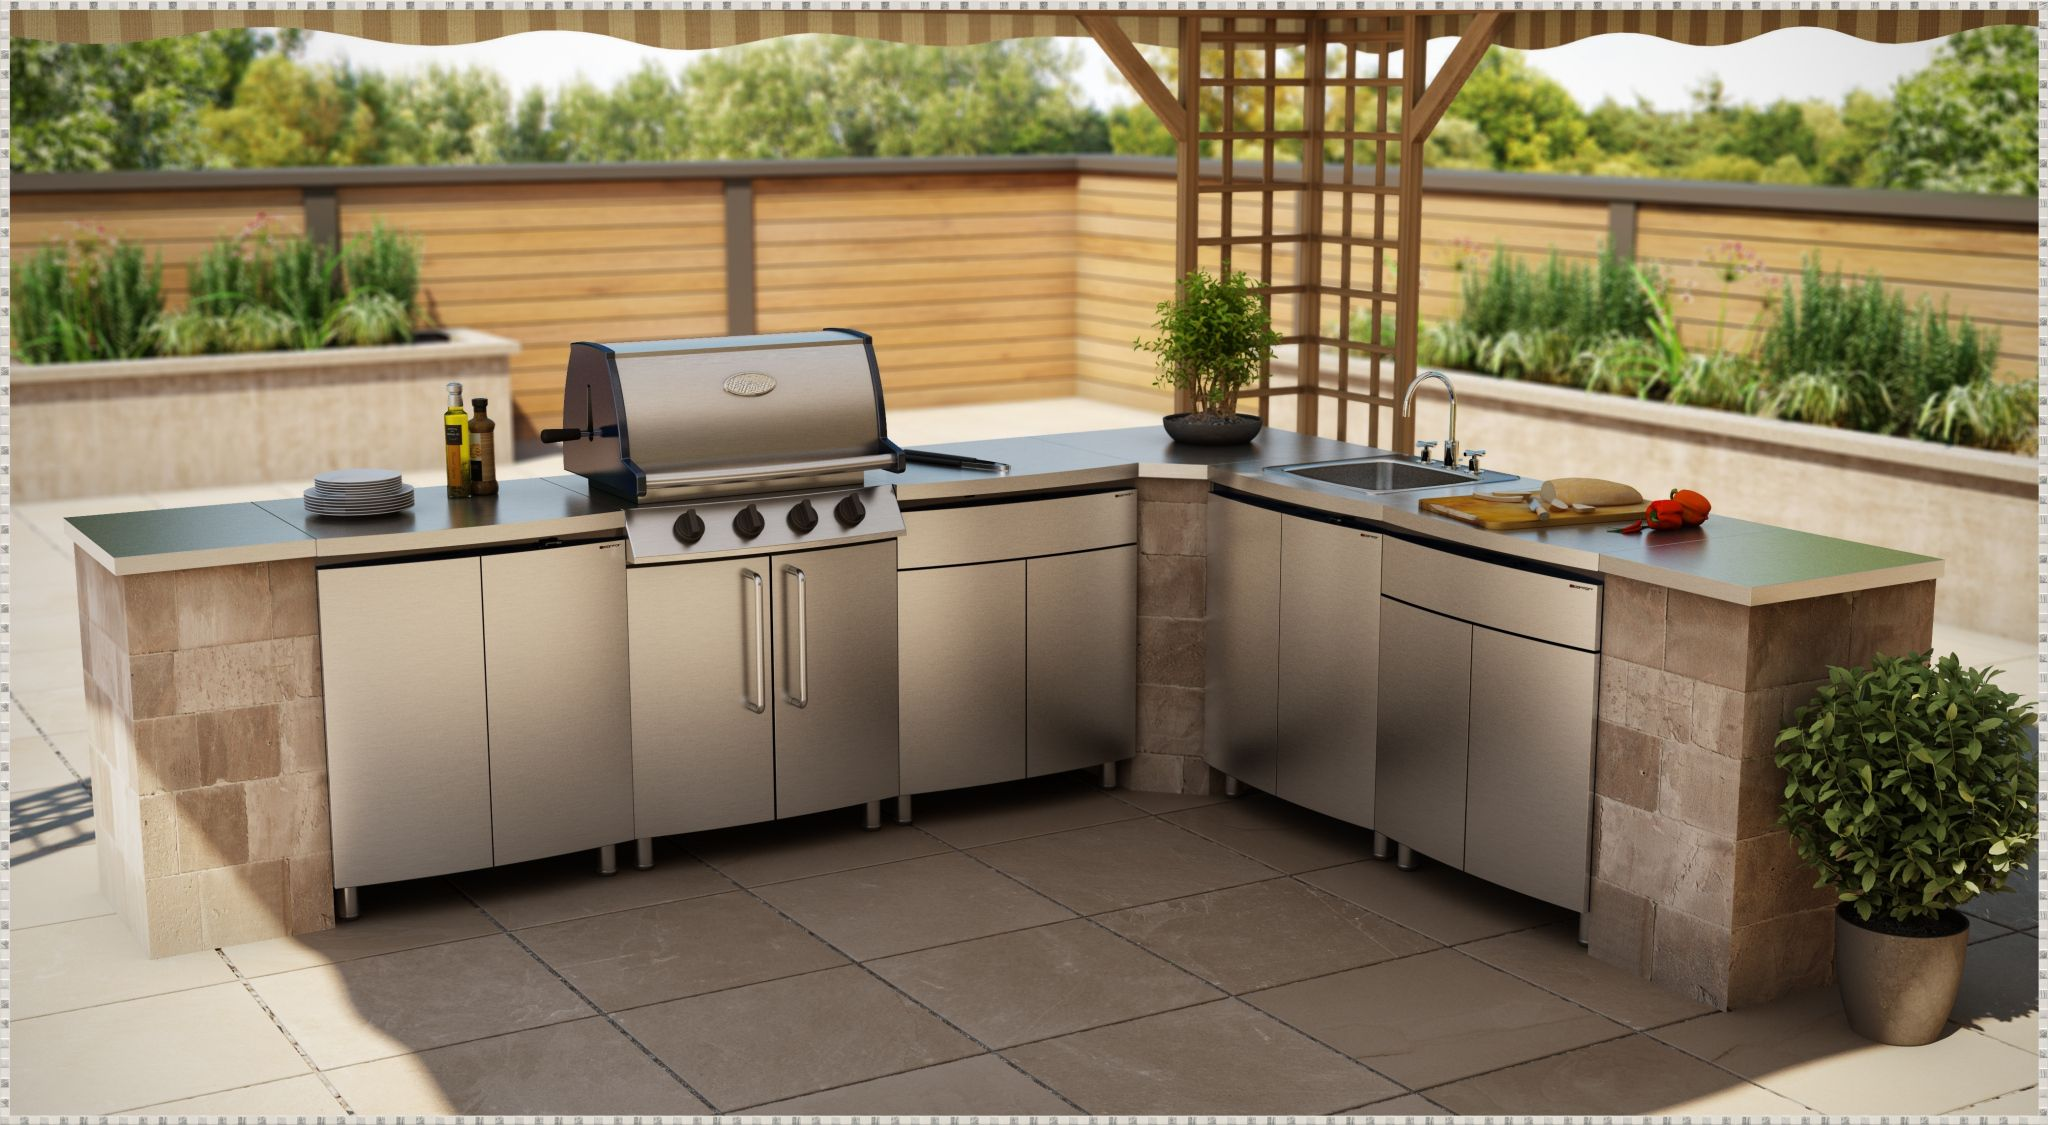 Ikea Outdoor Kitchen Cabinets What Is The Best Interior Paint